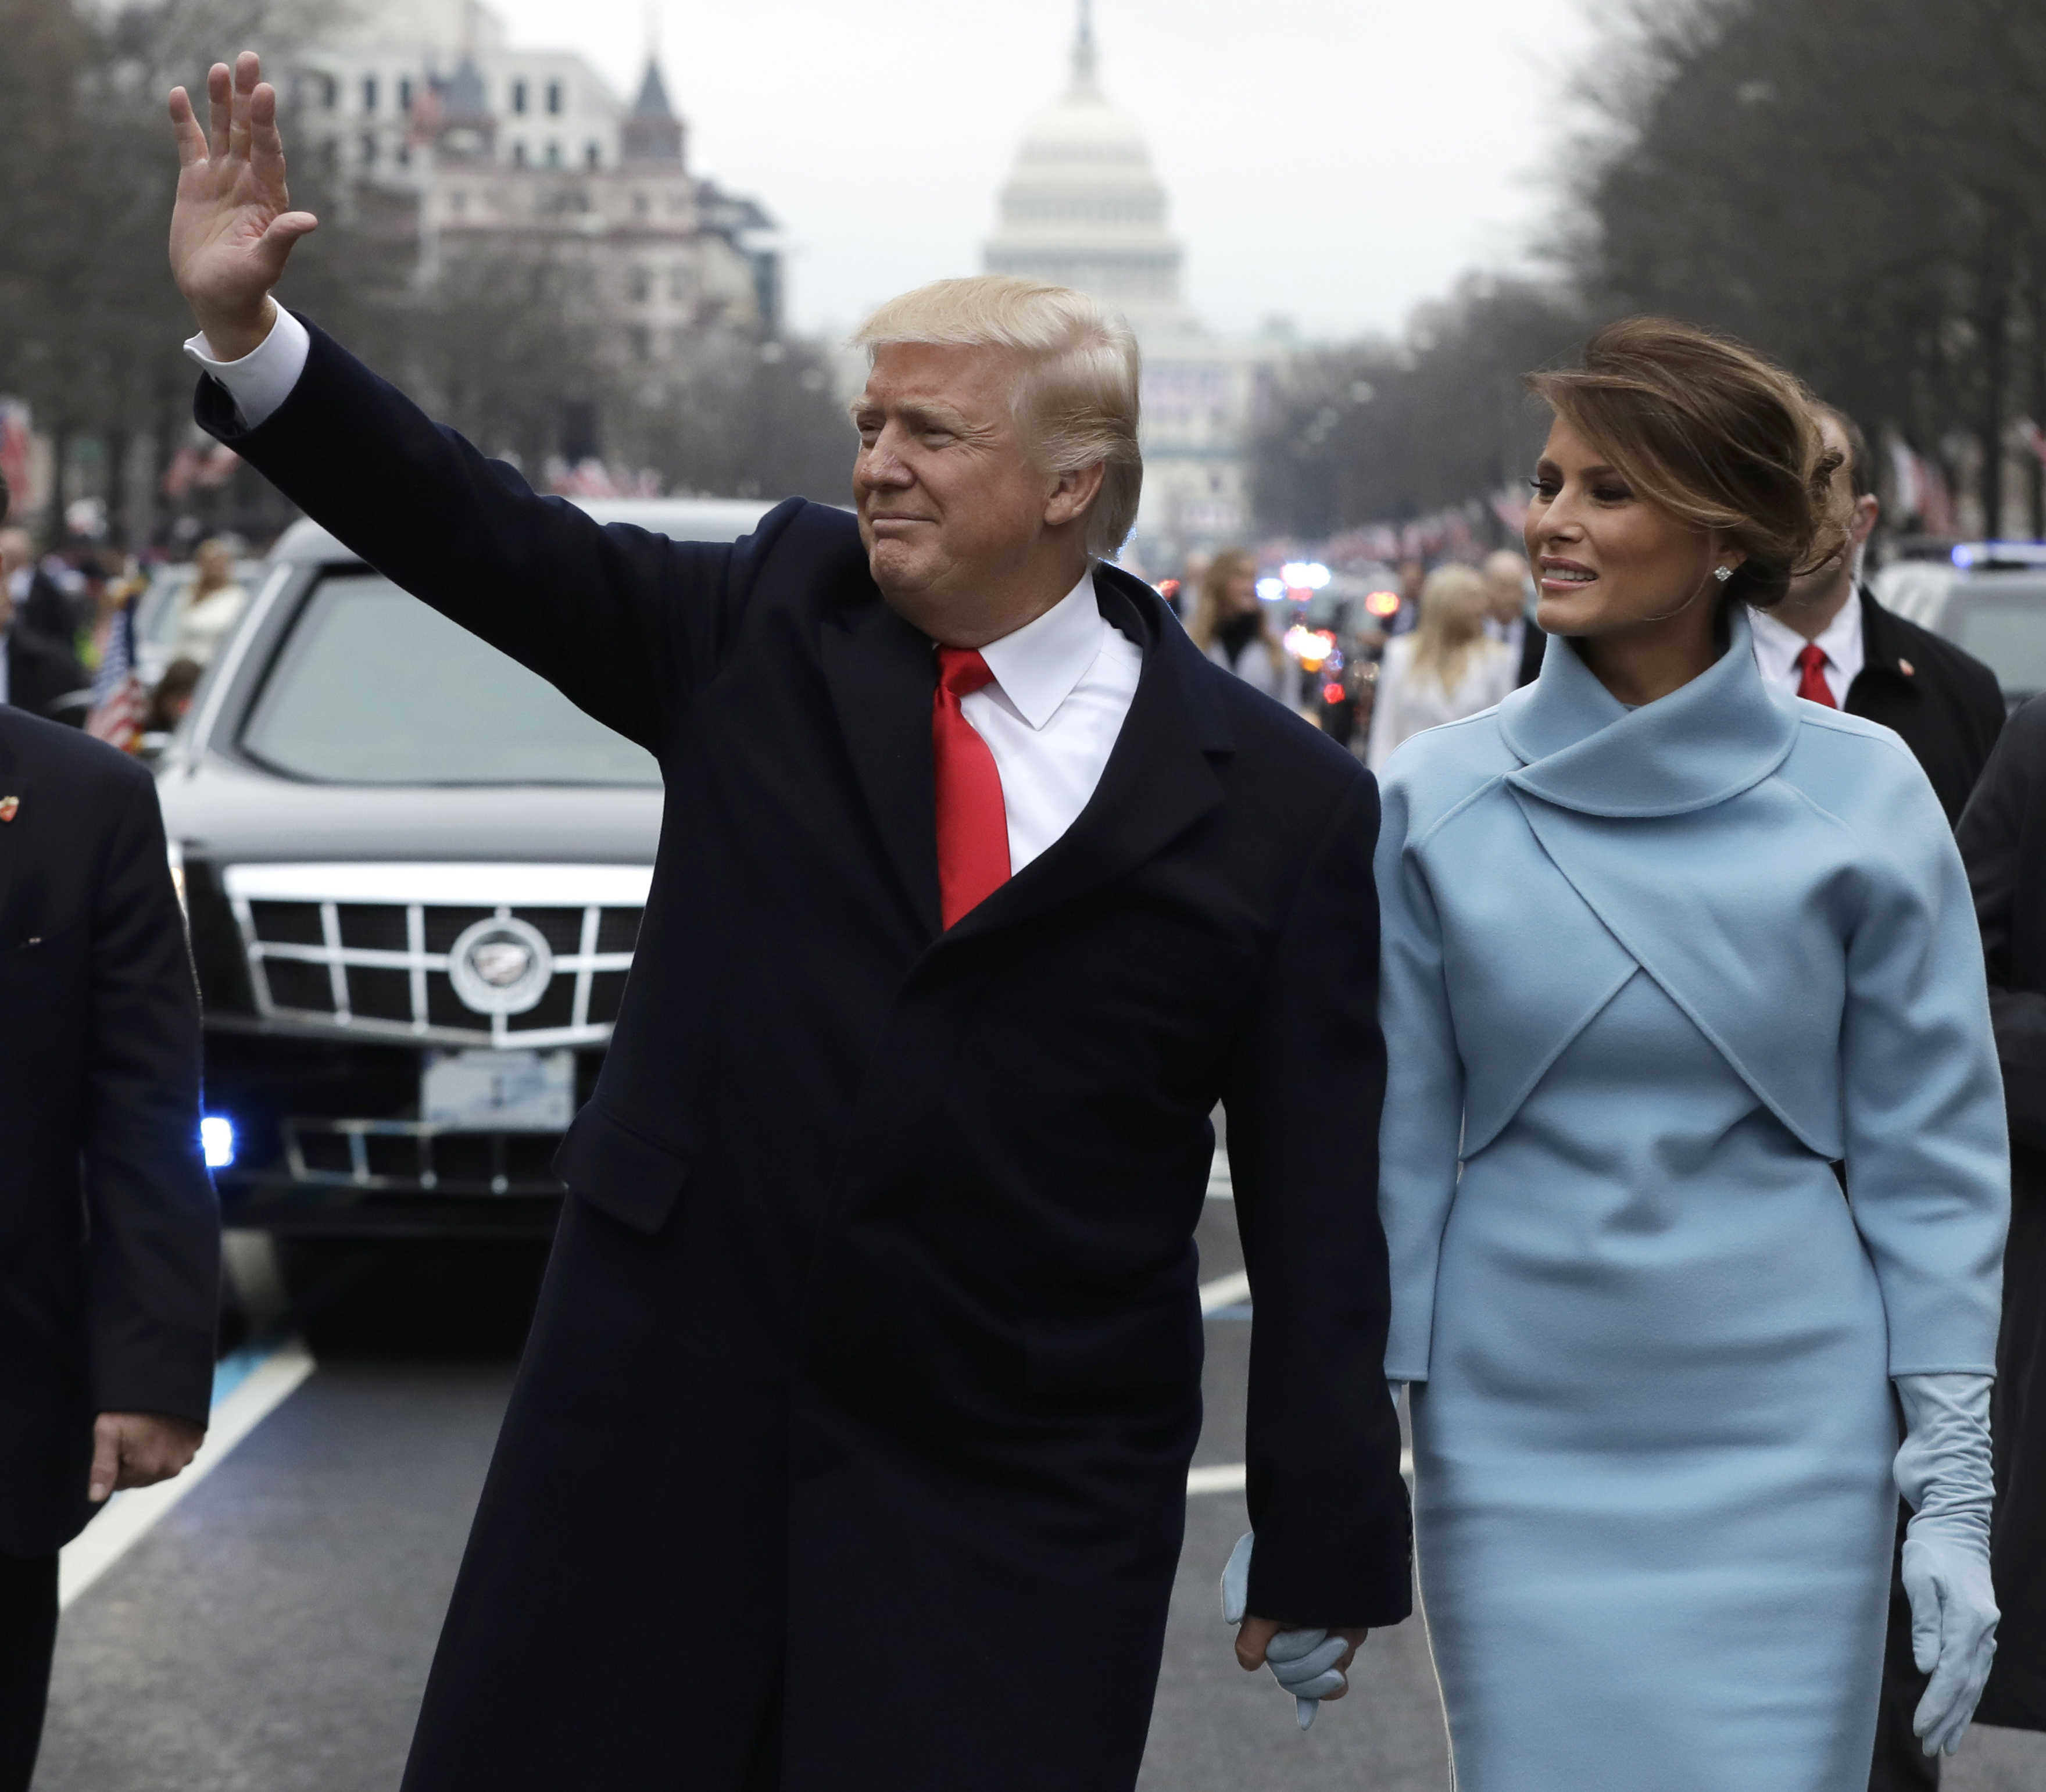 FILE- In this Jan. 20, 2017, file photo, President Donald Trump waves as he walks with first lady Melania Trump during the inauguration parade on Pennsylvania Avenue in Washington. Trump raised $107 million for his inaugural festivities. Trump's inaugural committee is due to file information about those donors with the Federal Election Commission and said it would do so on Tuesday, April 18. (AP Photo/Evan Vucci, Pool, File)